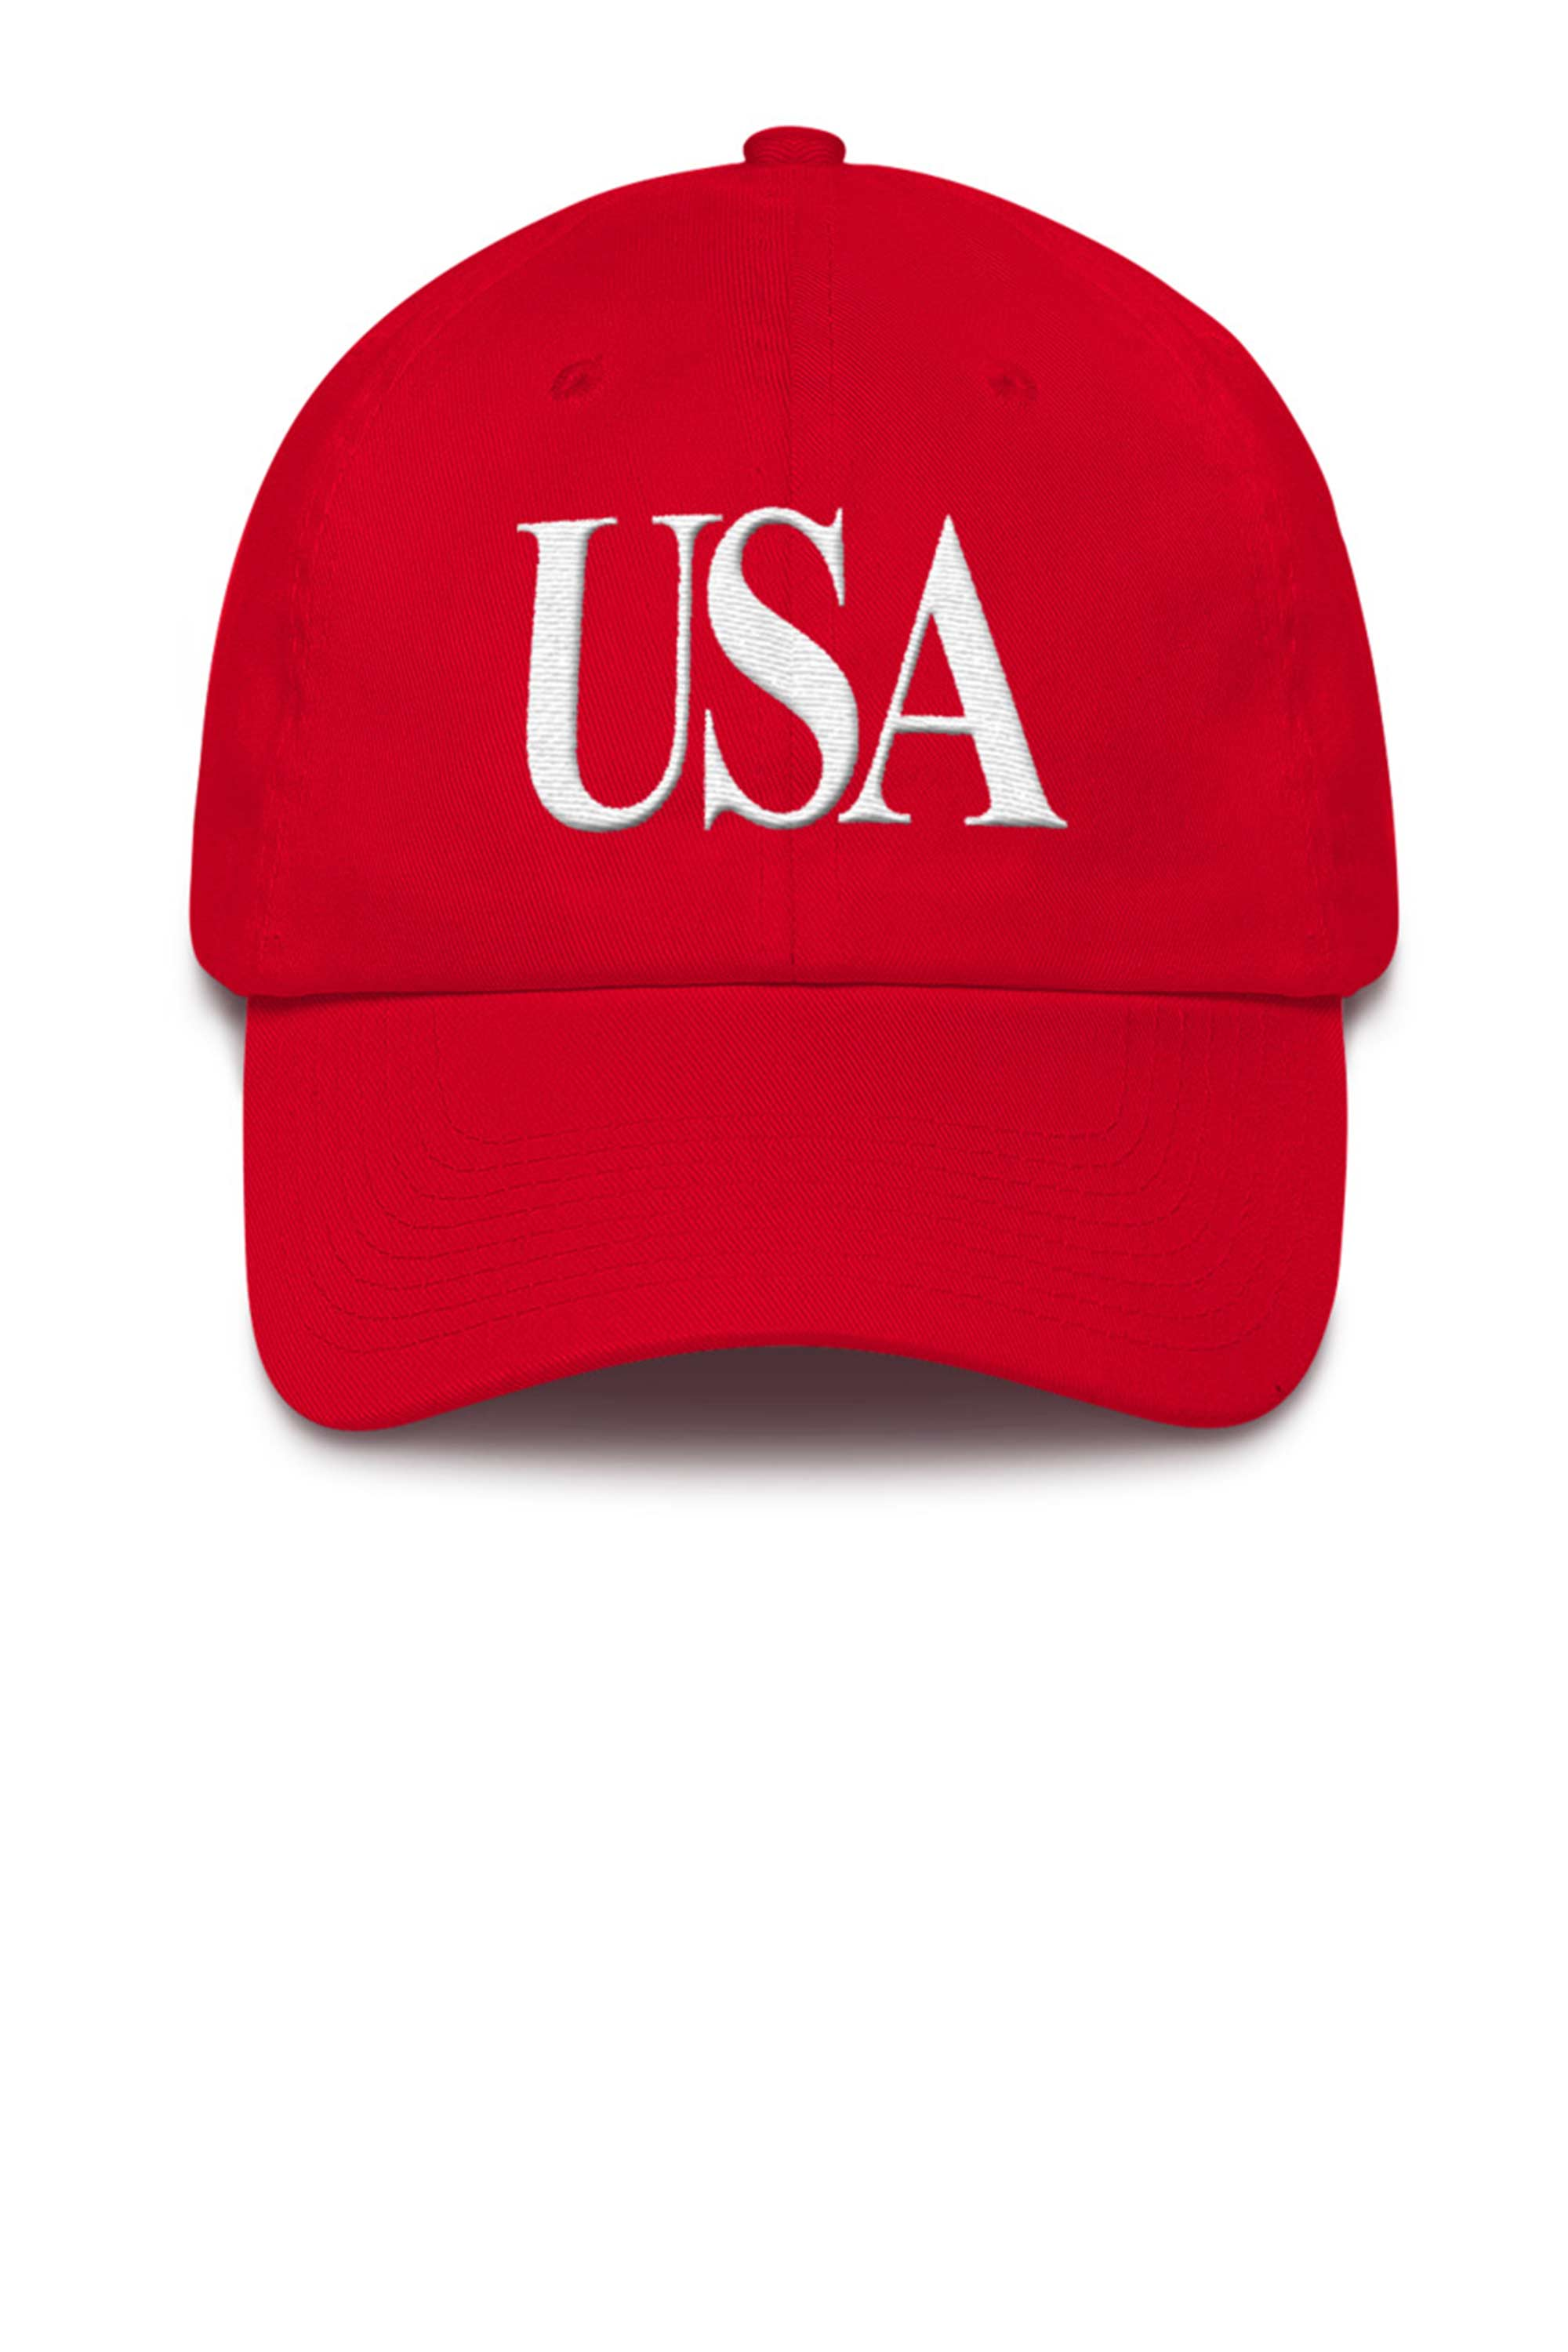 Unisex USA Cap 3D puff embroidery Made in the USA